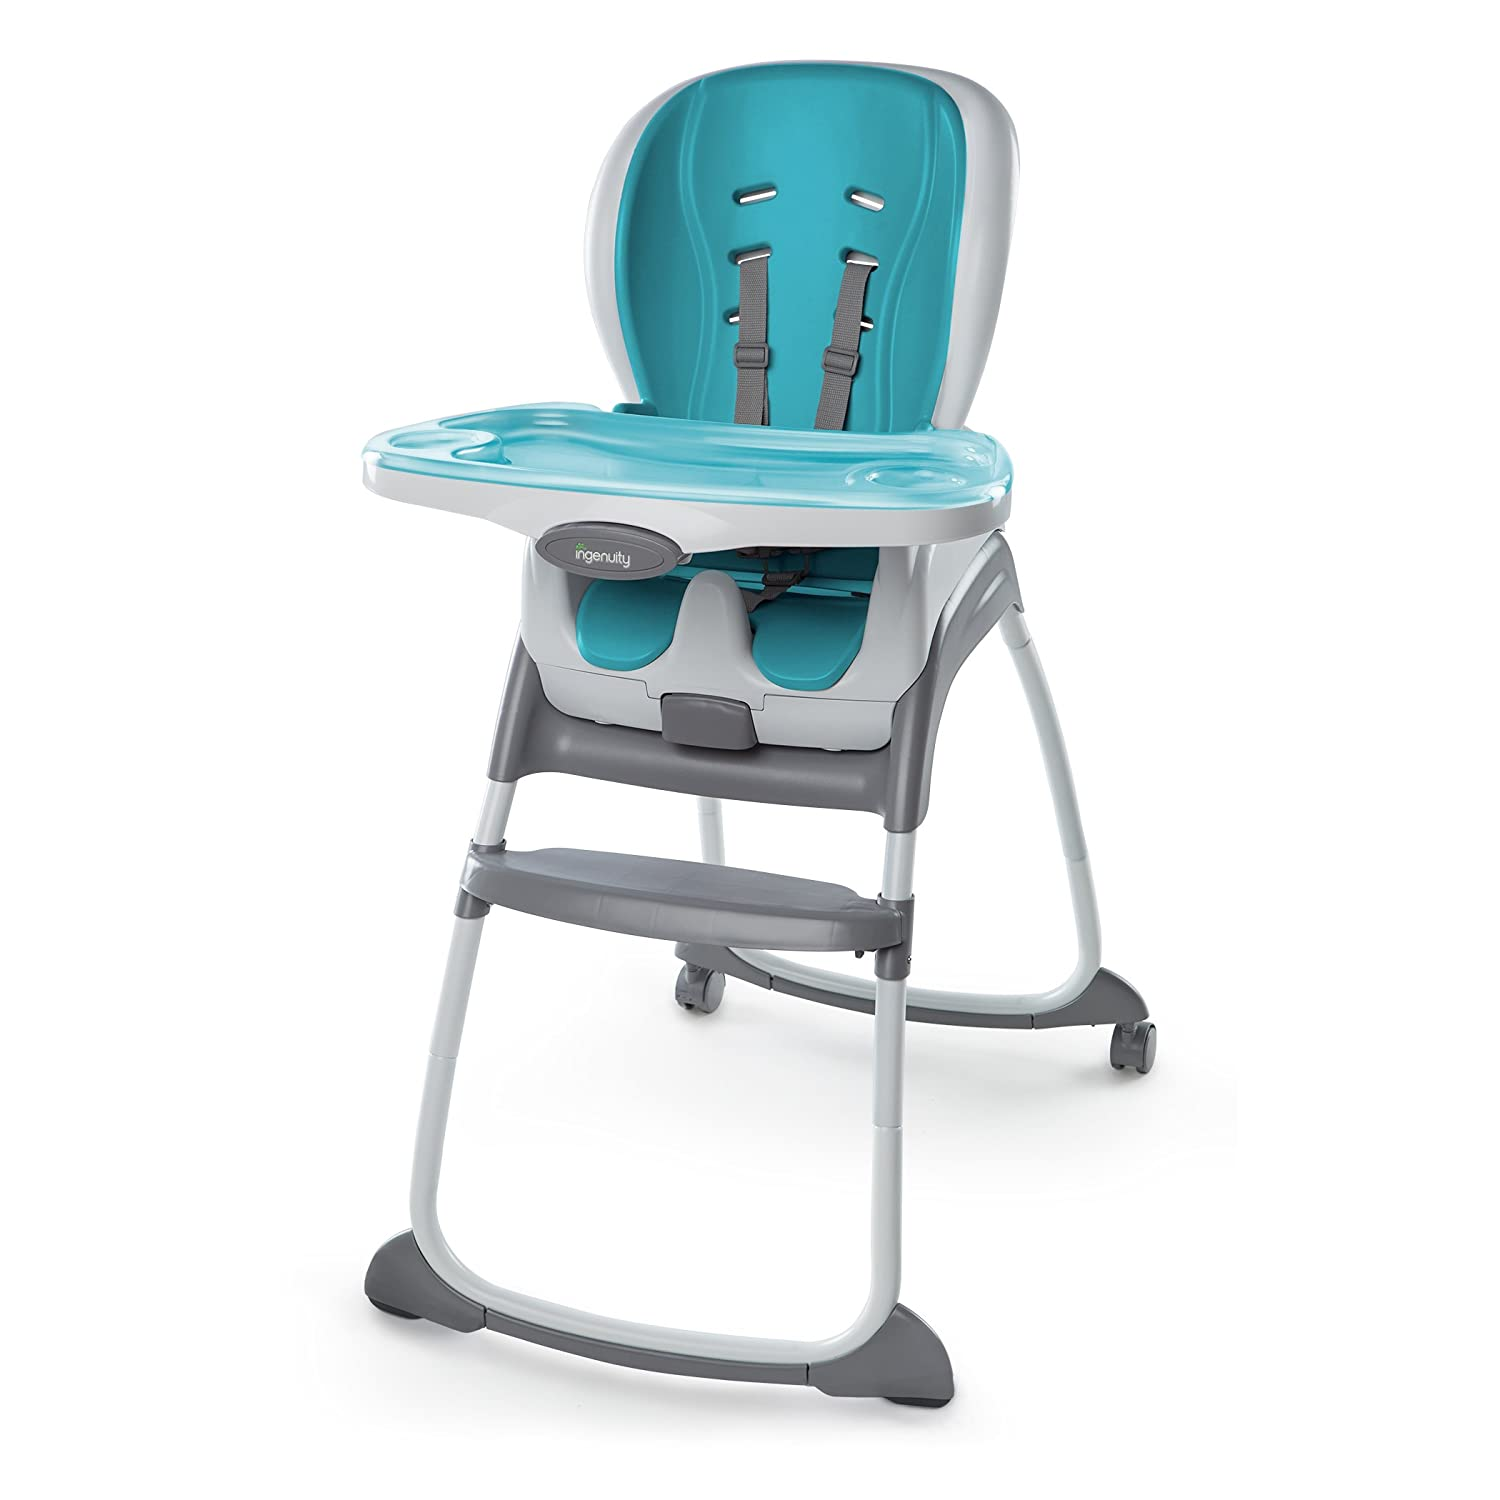 Ingenuity Trio Smart Clean High Chair Aqua 3 in 1 Amazon